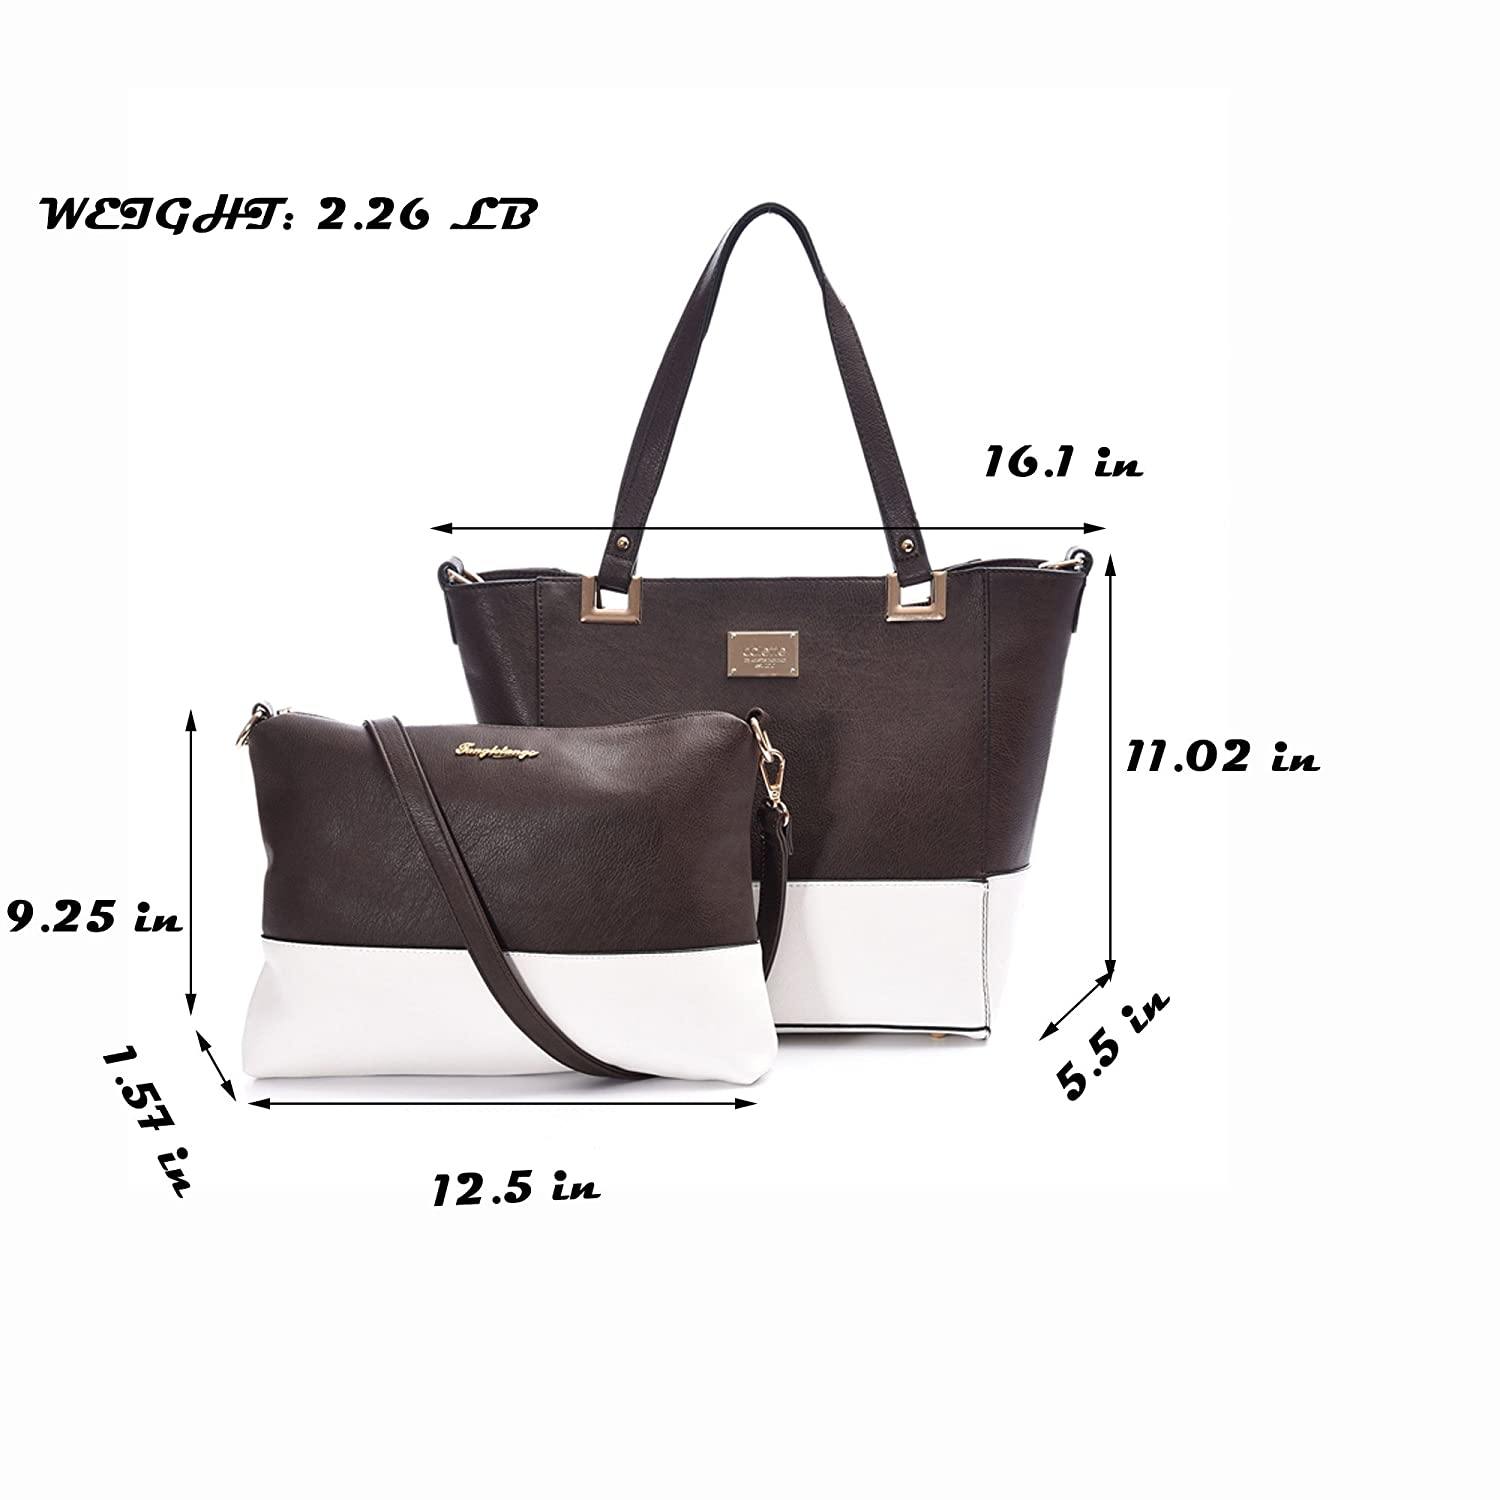 Amazon.com  Leather Handbag Women Shoulder Tote Bag Business Shopper Purse  Day Pack With Small Cross Body Pouch  Computers   Accessories 7d4757a5a2121